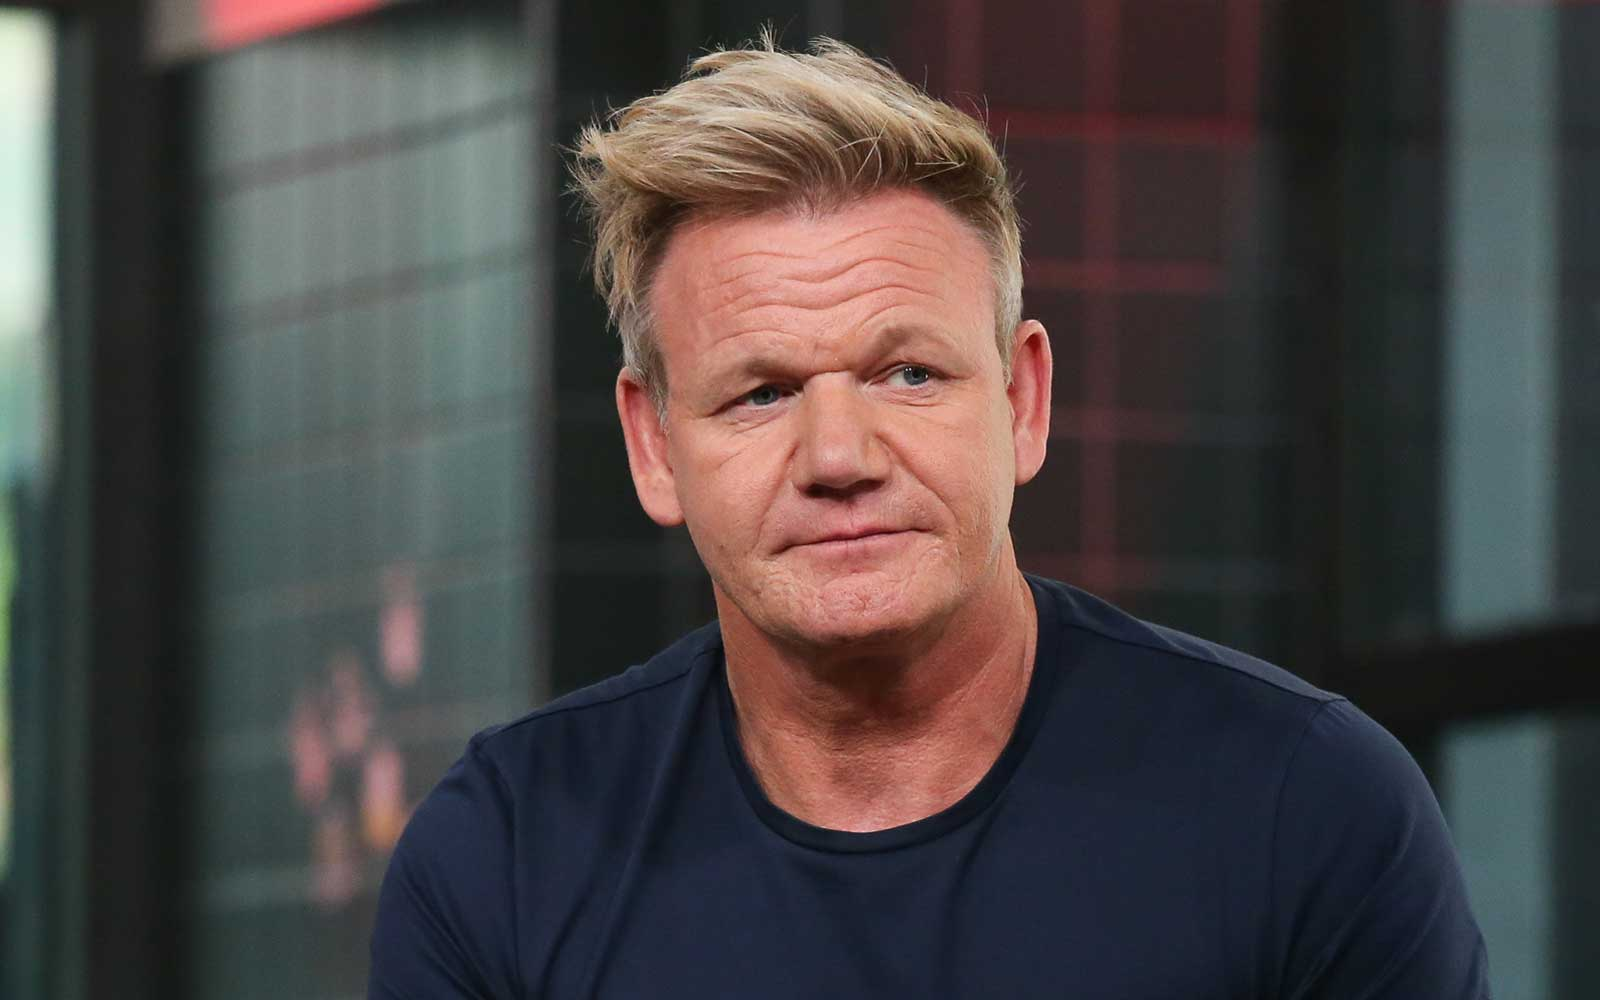 Gordon Ramsay's New Travel Show Will Send Him Around the World to Compete With Local Chefs